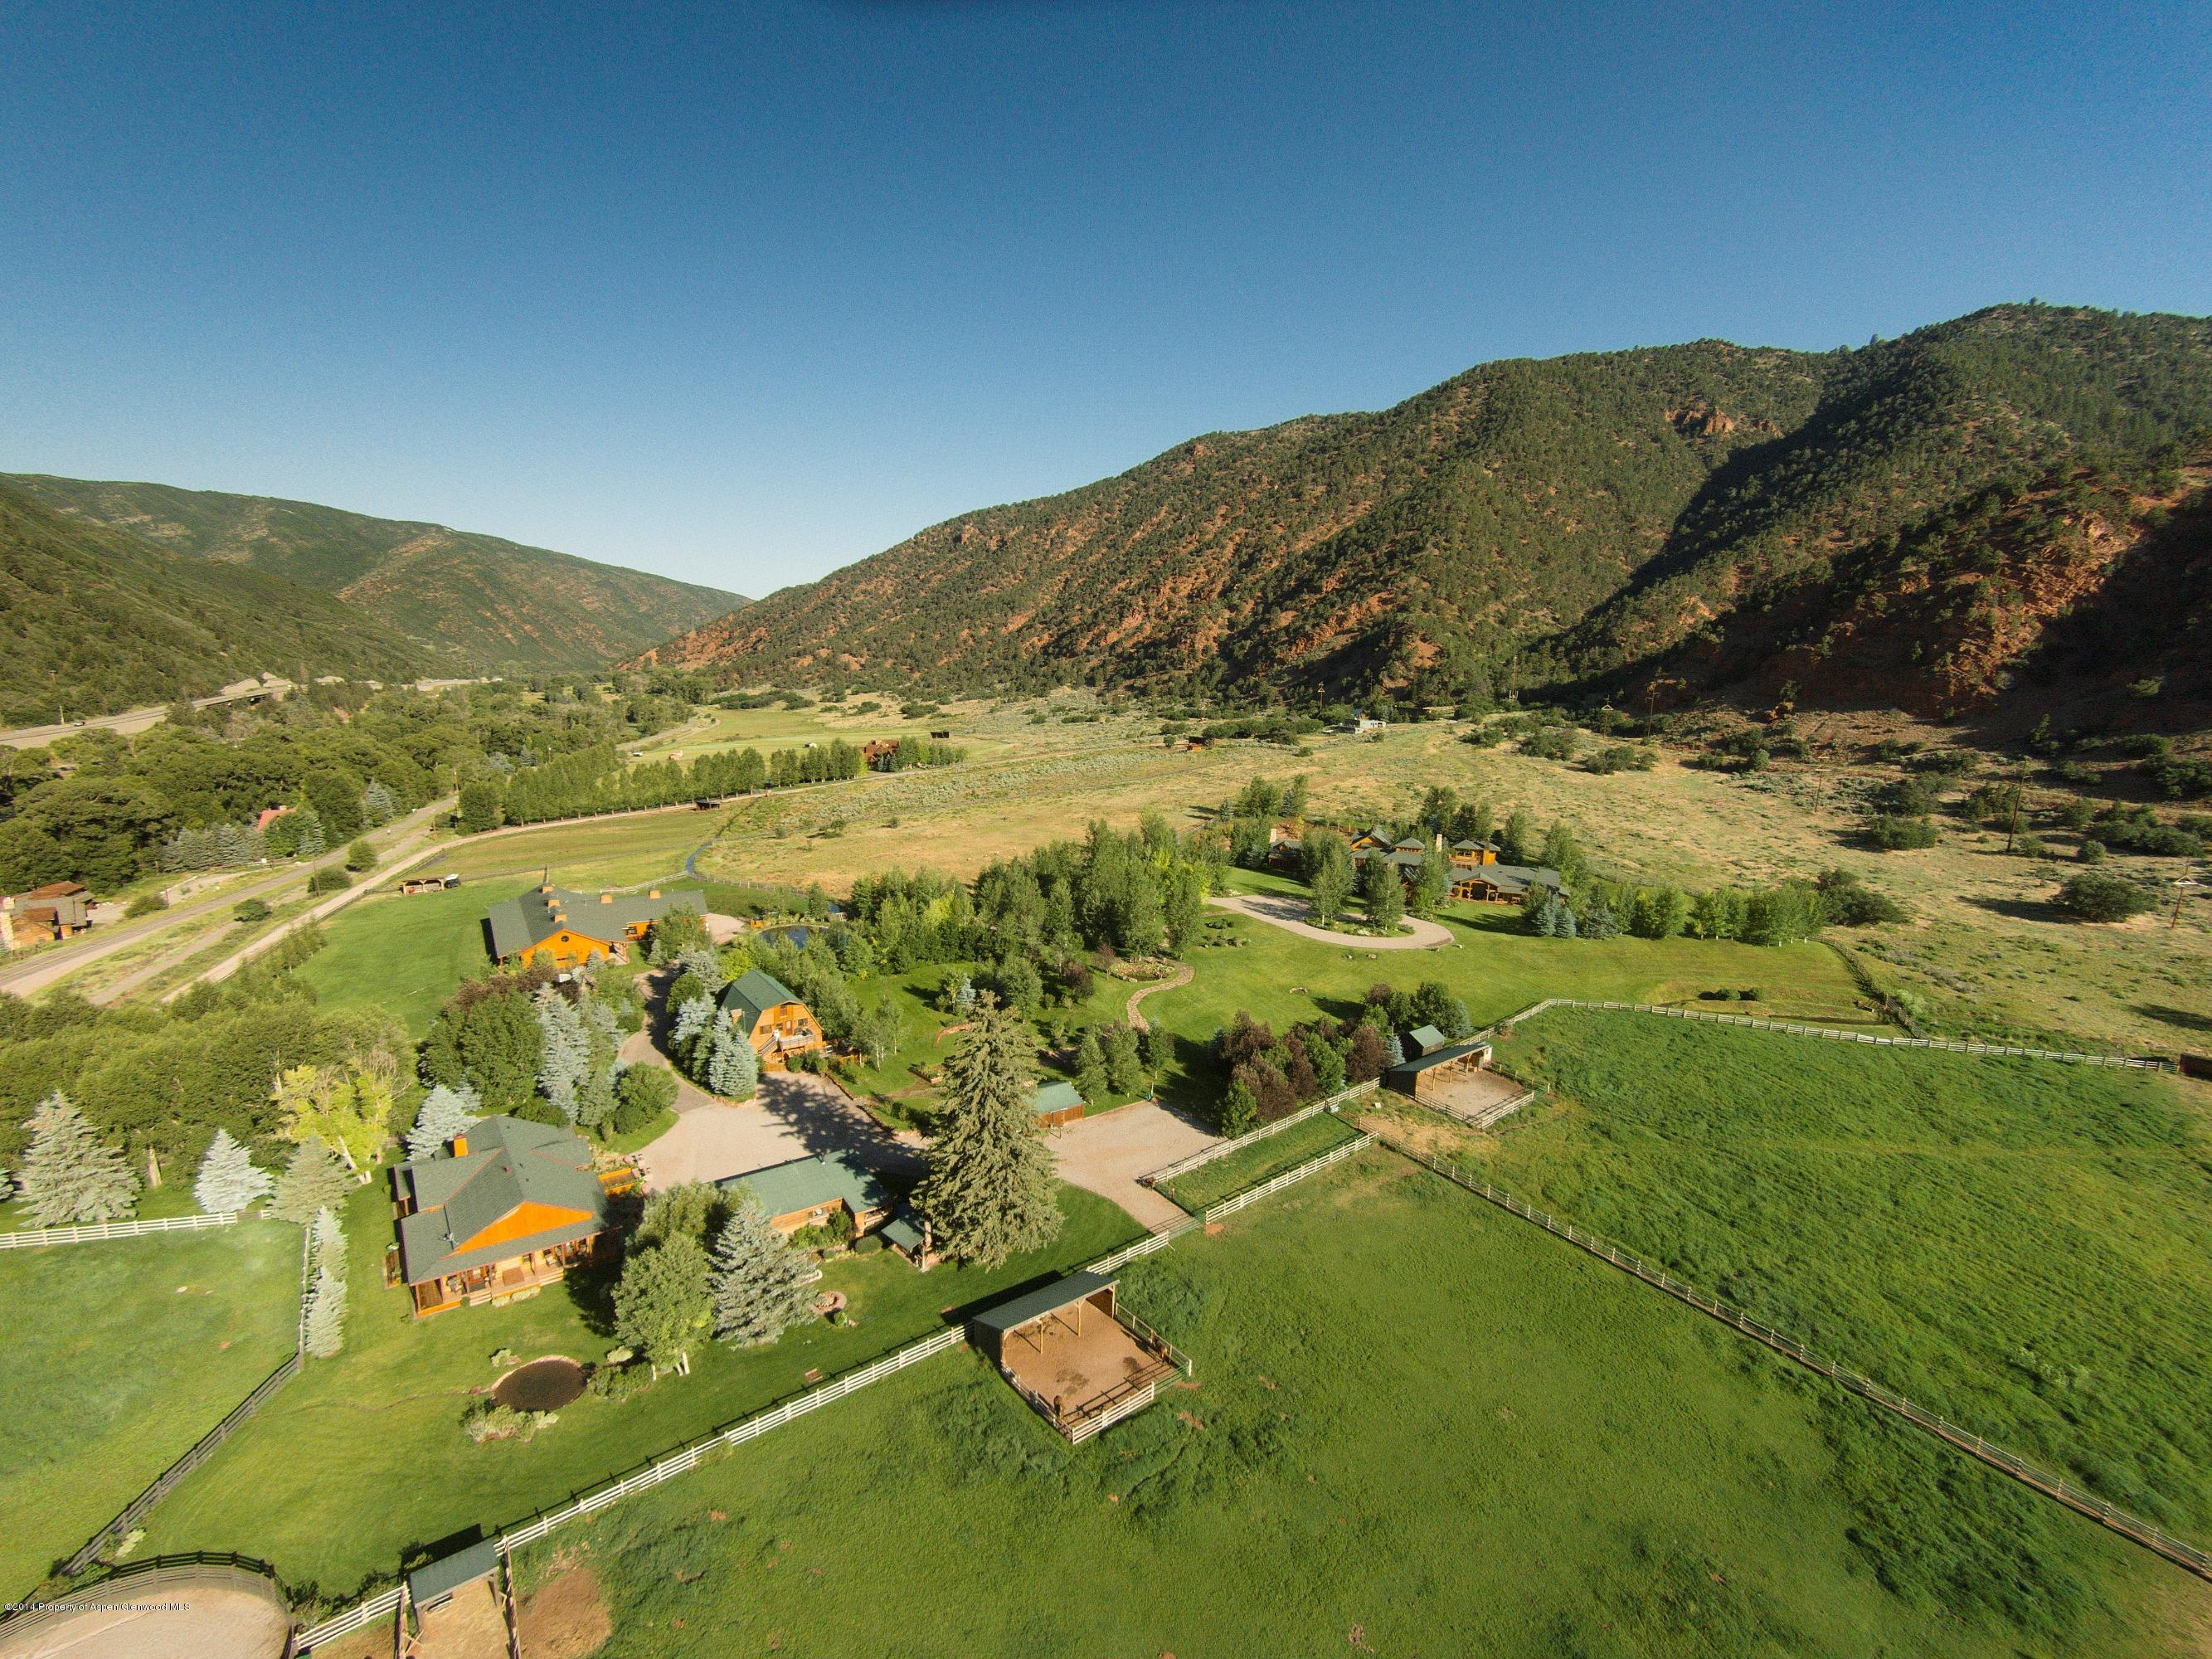 MLS# 135595 - 49 - 50 E River Ranch Road, Snowmass, CO 81654